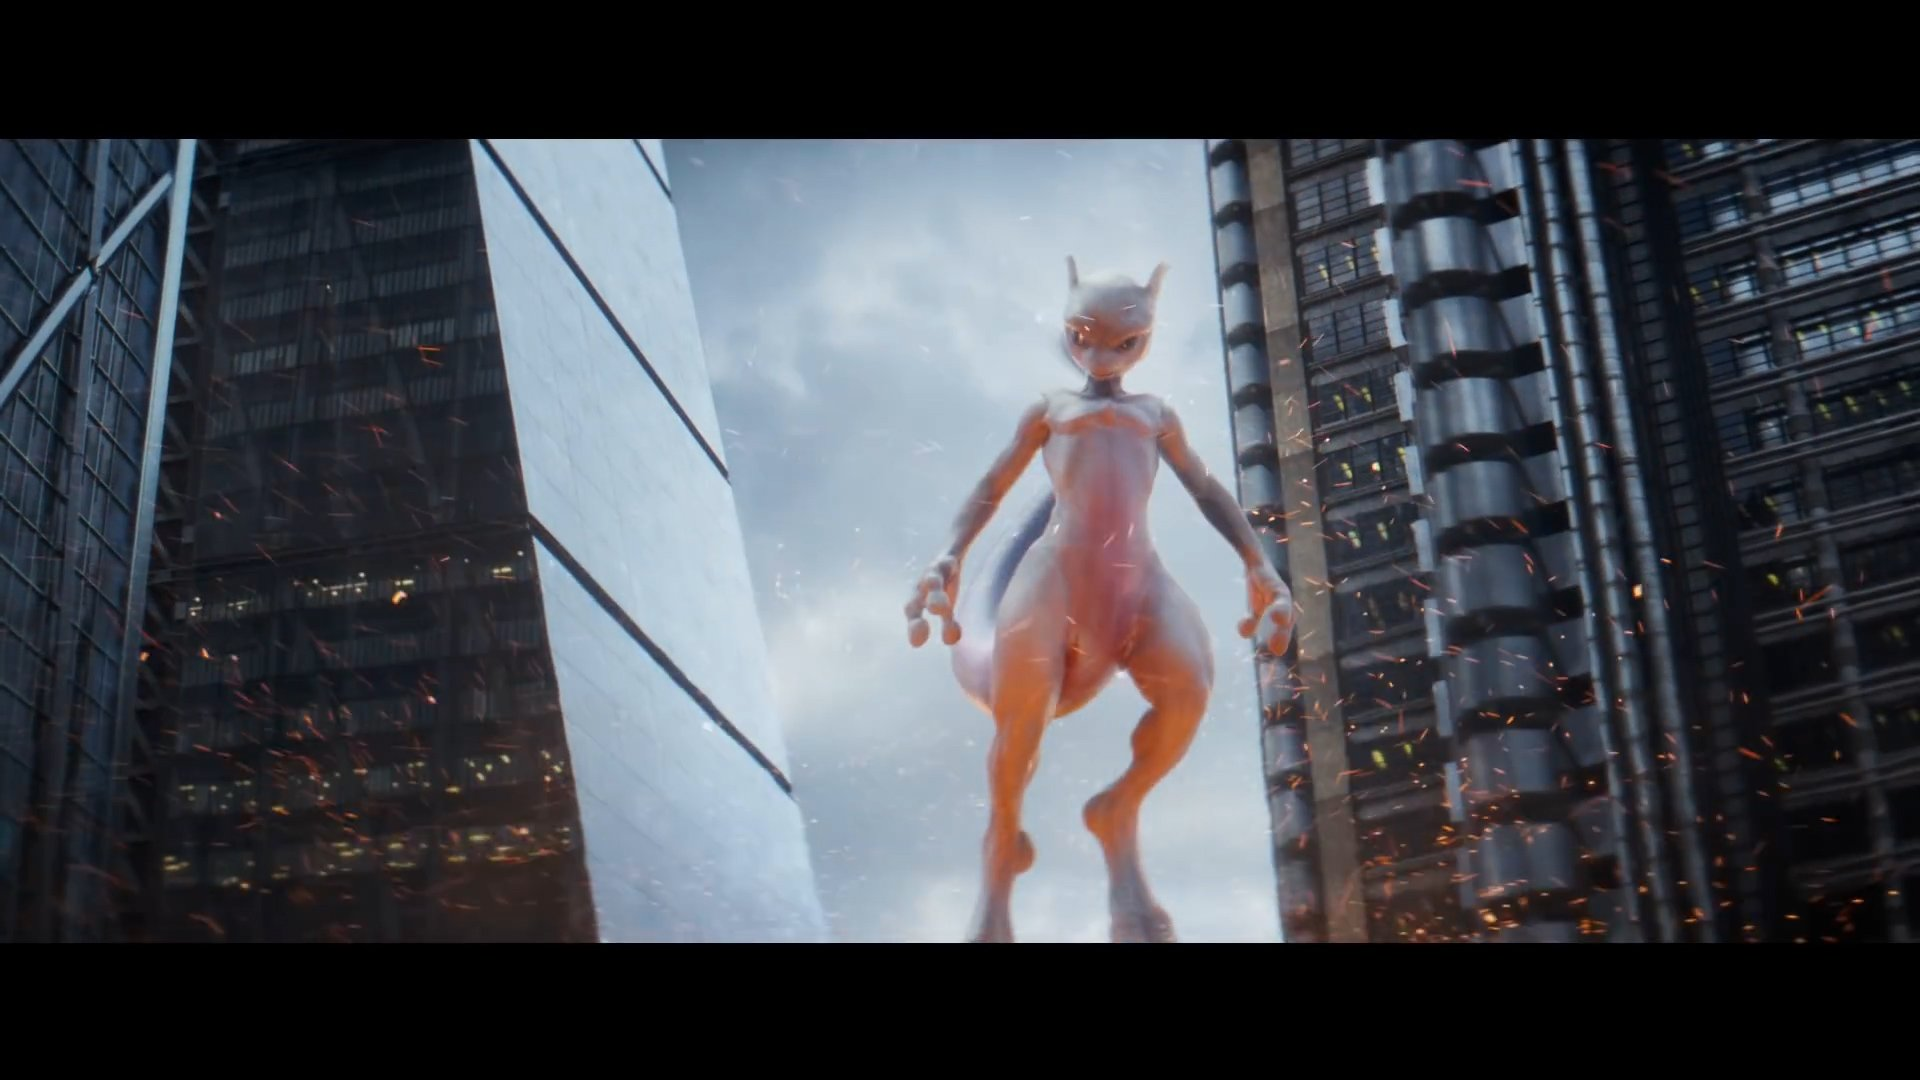 Mew Two in Detective Pikachu